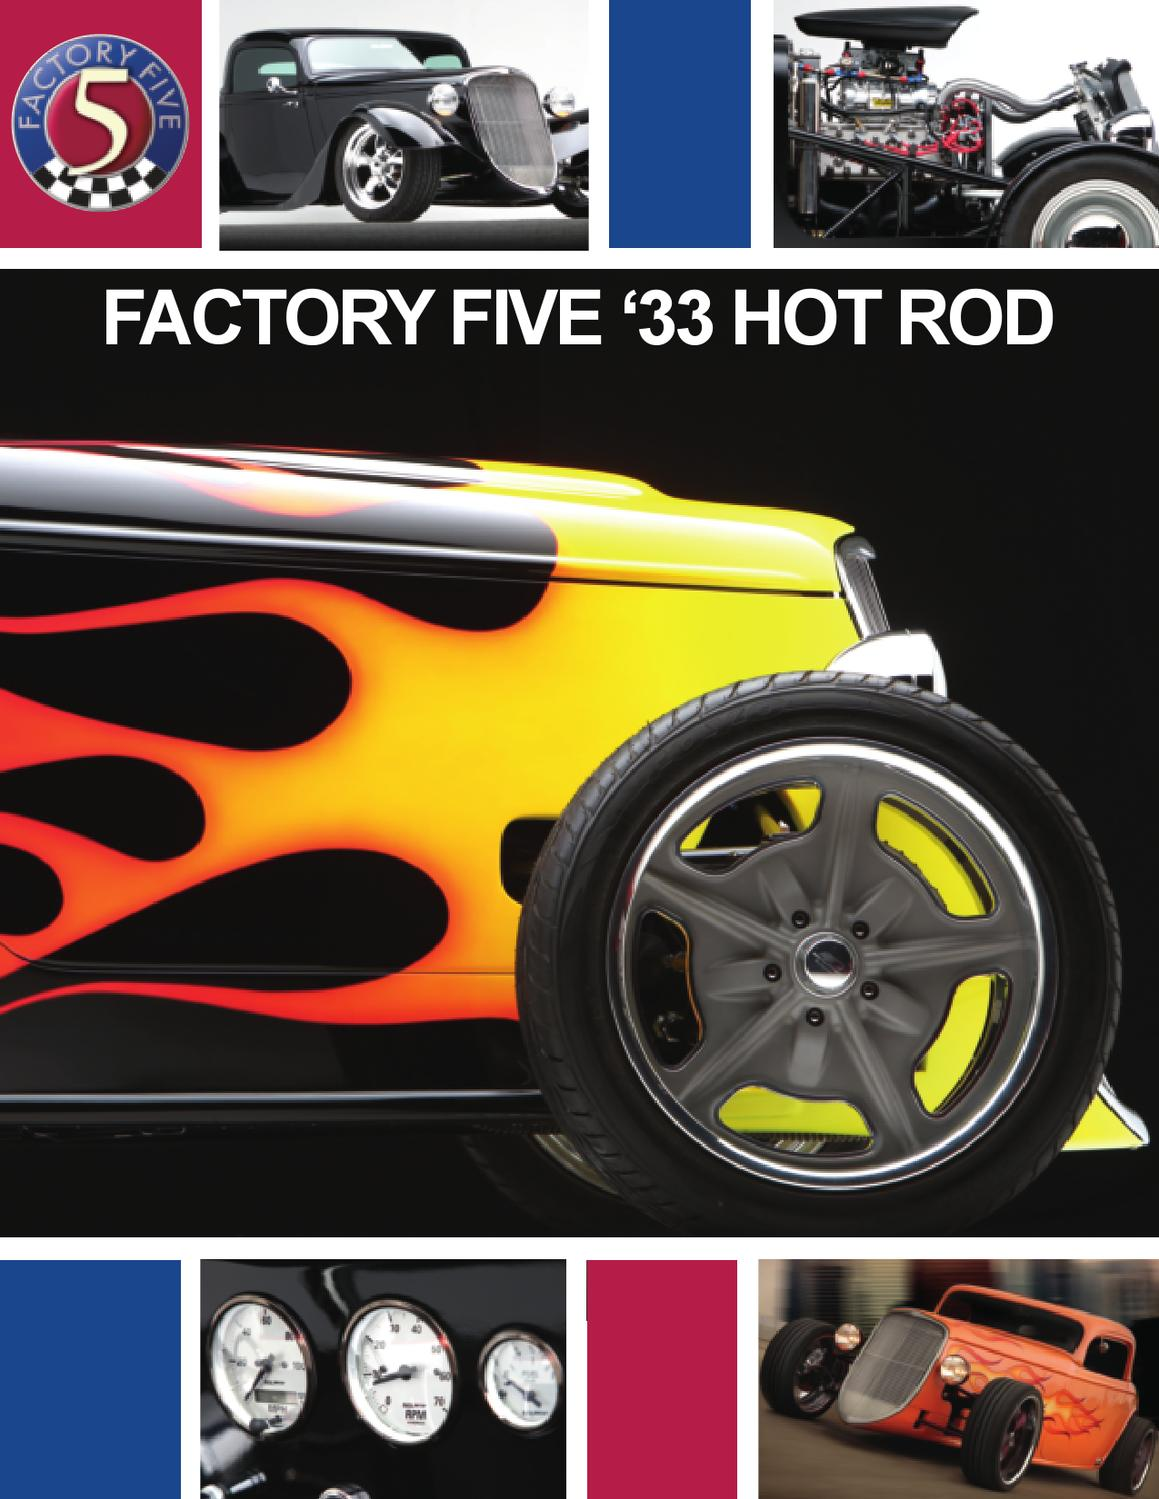 Factory Five 33 Hot Rod Brochure By David Lindsey Issuu Control Panel And Wiring Harness For Rods